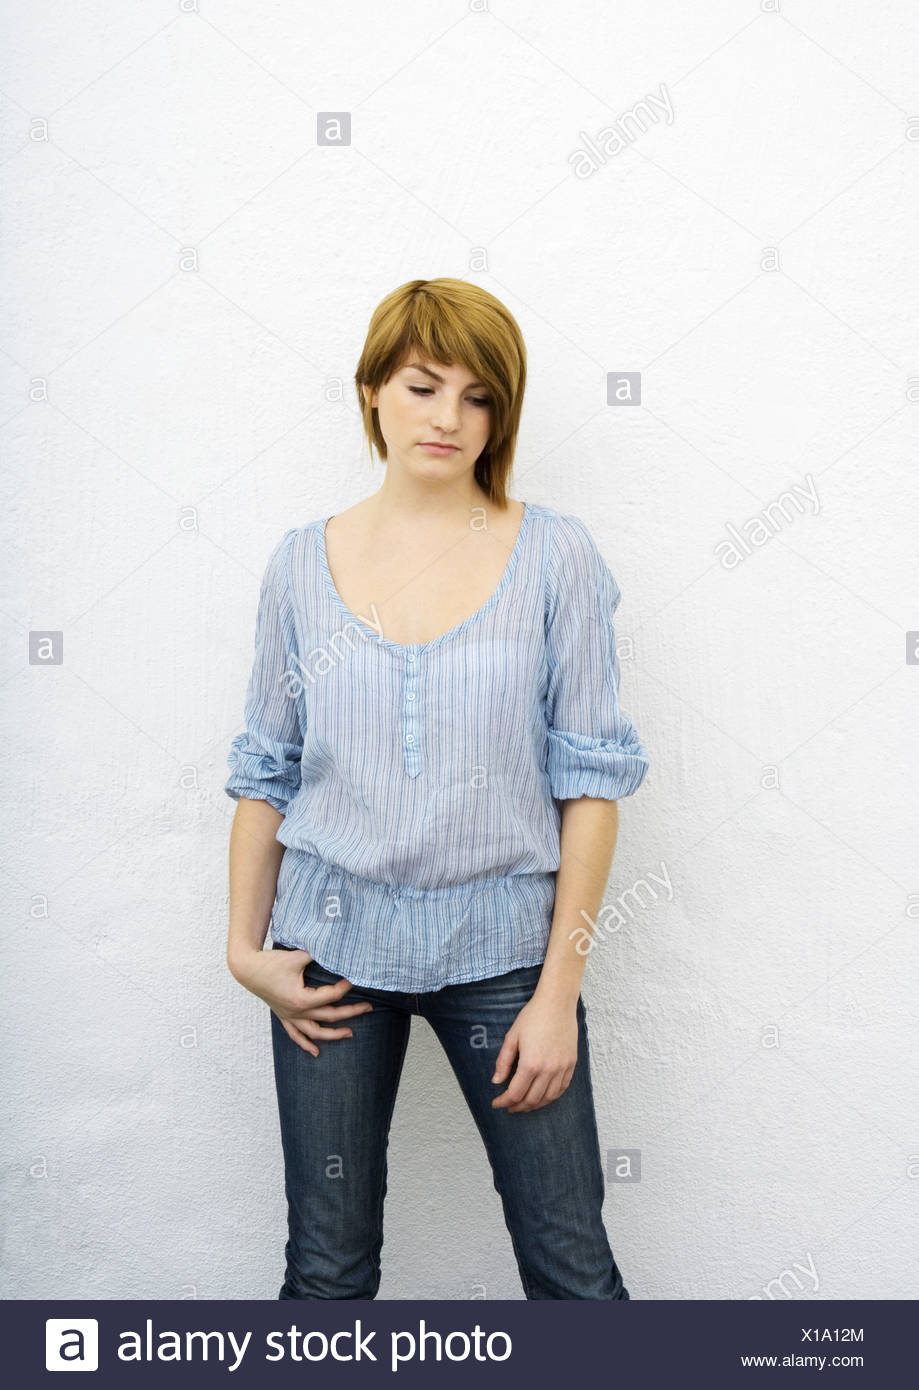 Young woman standing, looking down, portrait, three quarter length - Stock Image